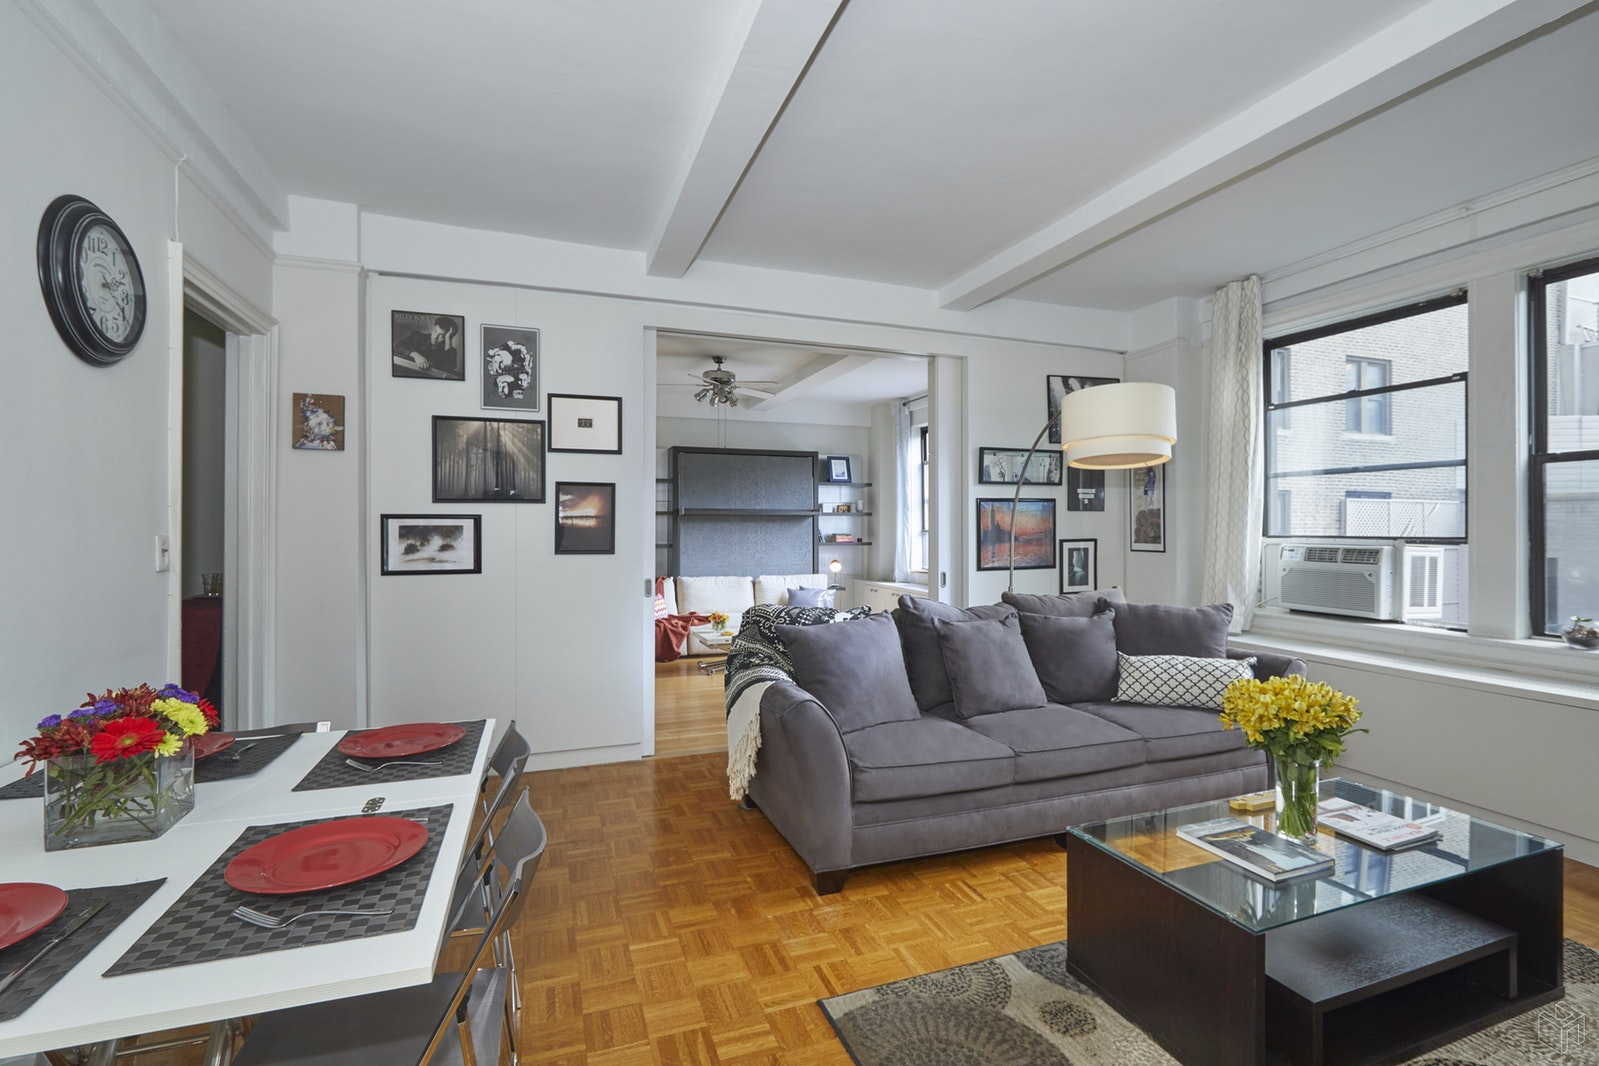 20 West 72nd Street 605b/606, Upper West Side, NYC, 10023, $1,075,000, Sold Property, Halstead Real Estate, Photo 1